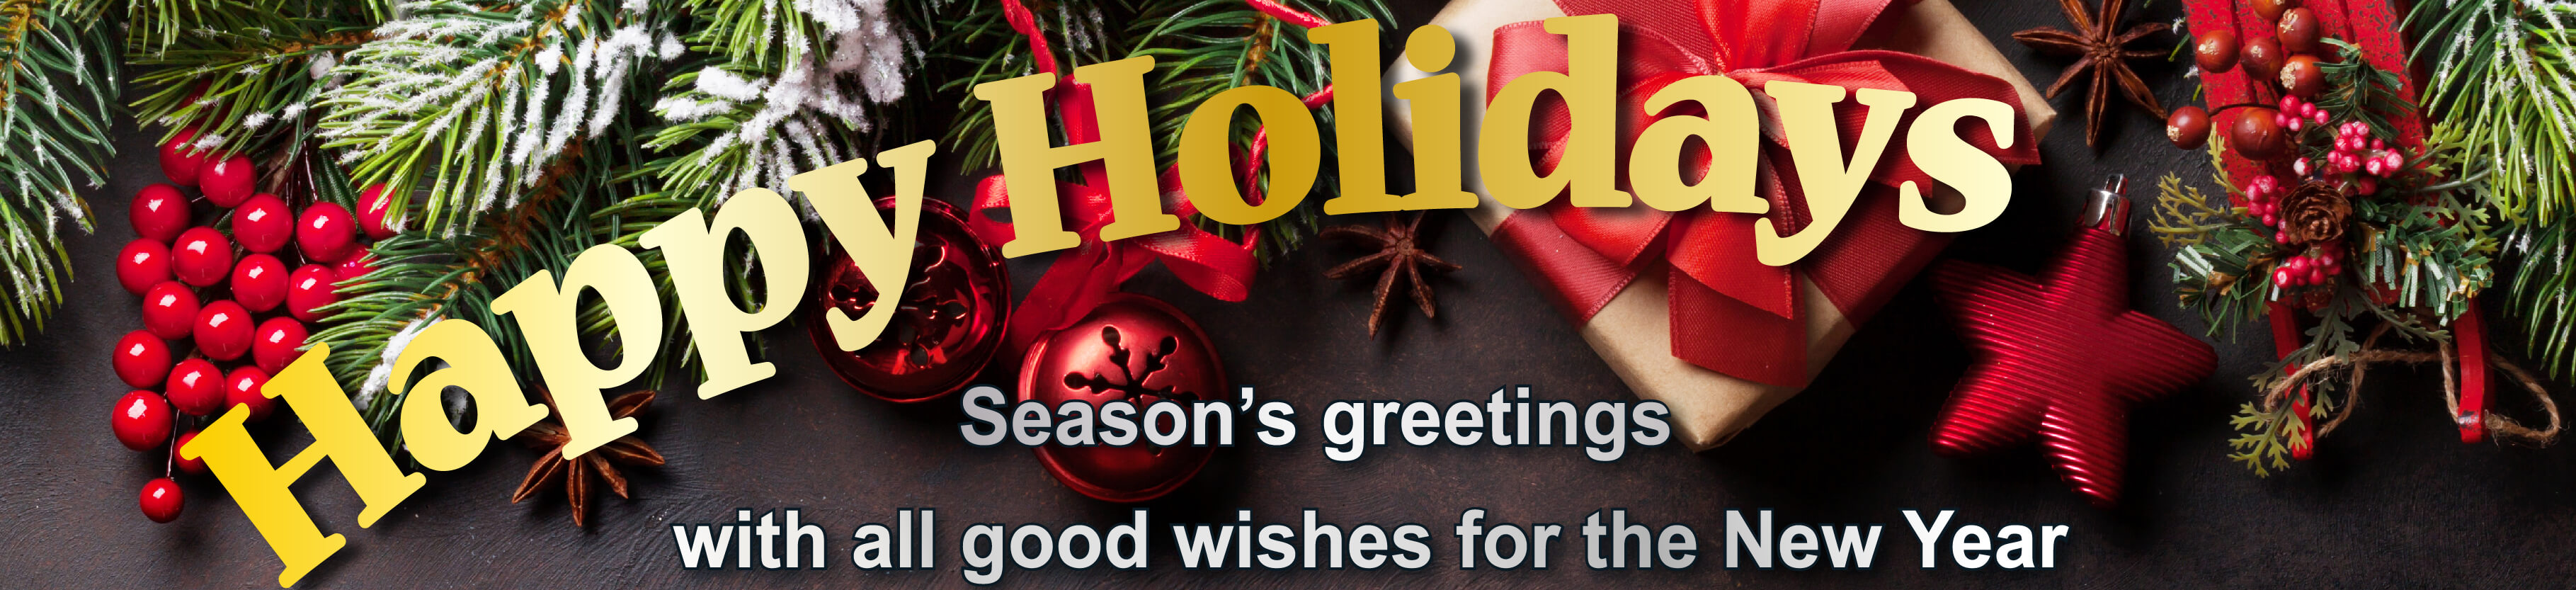 OT Systems wishes you a wonderful Holiday Season!